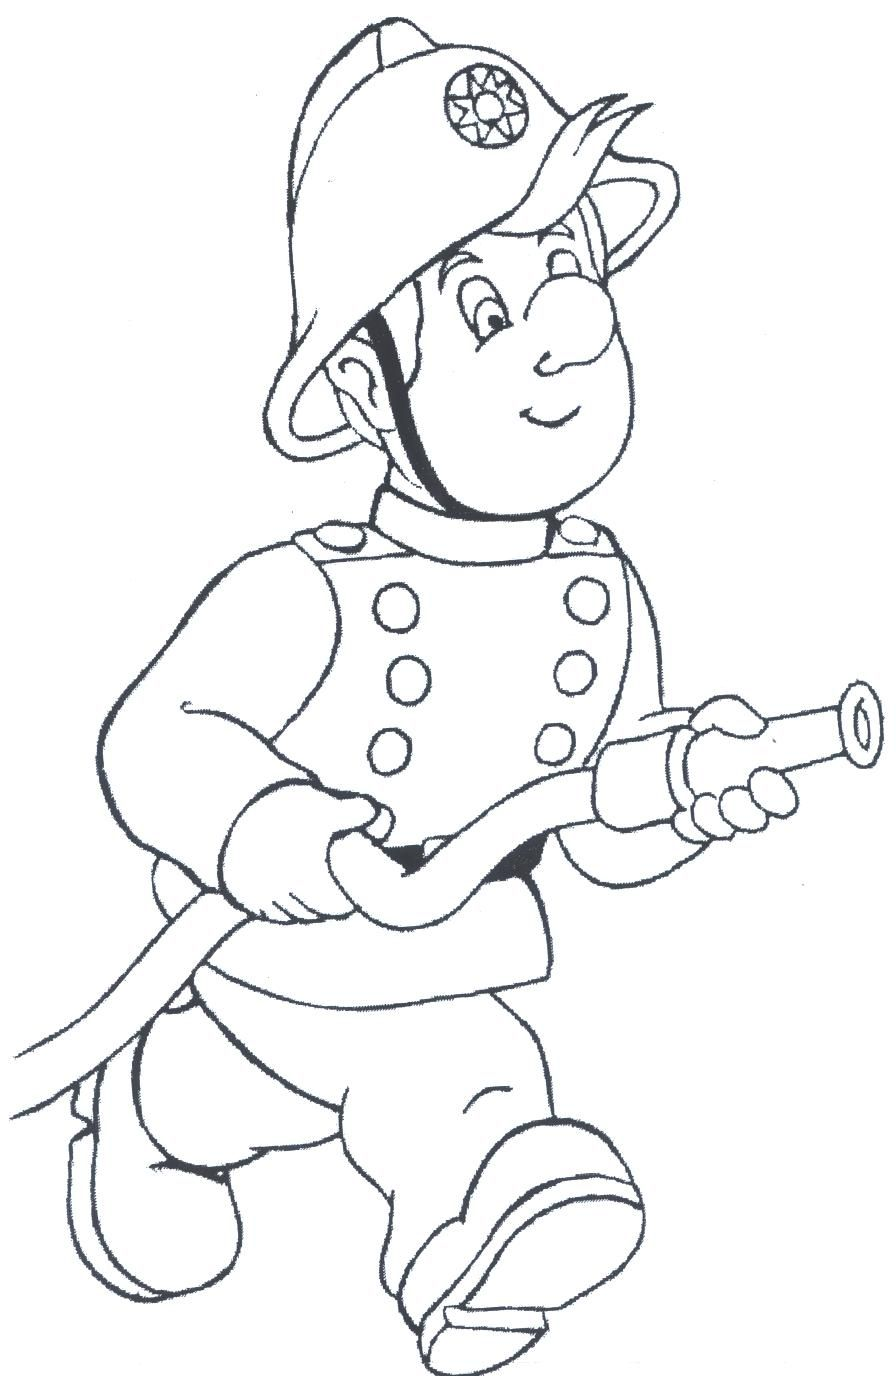 Firefighter Coloring Pages Pompieri Disegni Da Colorare Bambini